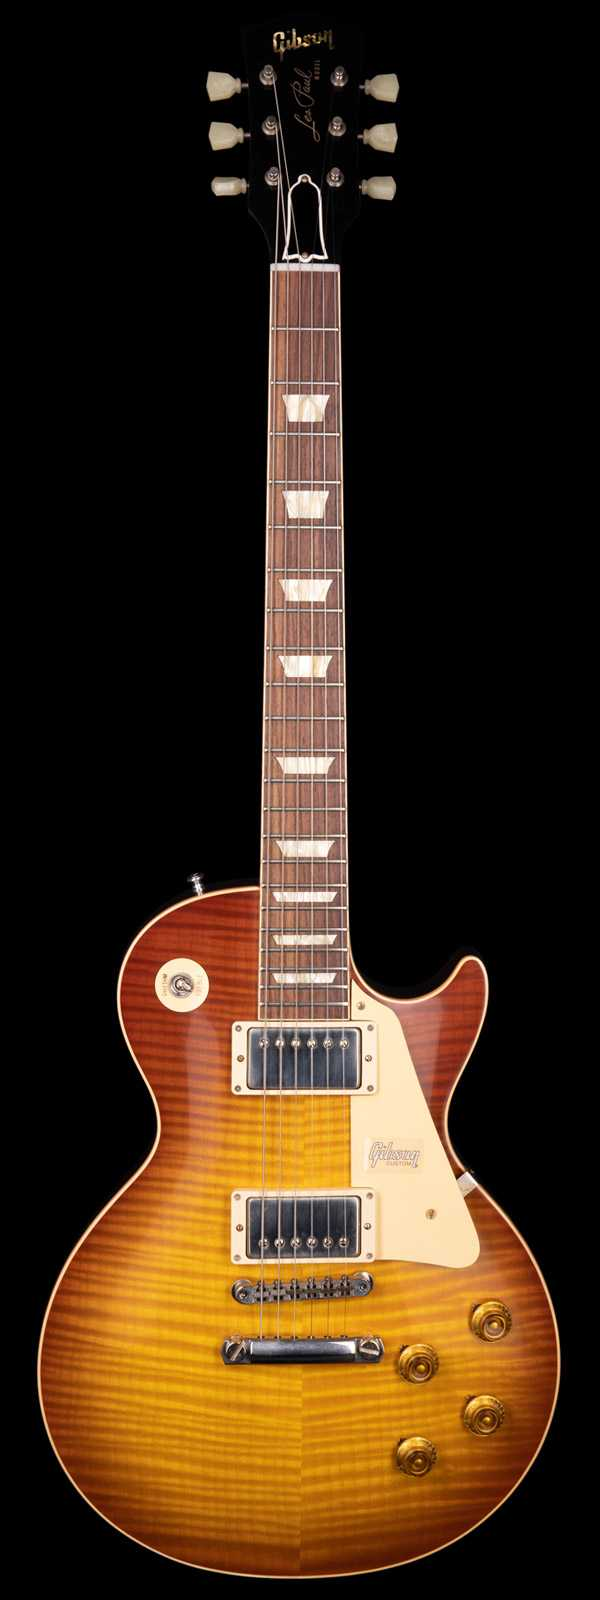 Gibson Custom Shop 60th Anniversary 1959 Les Paul Standard VOS Iced Tea Burst